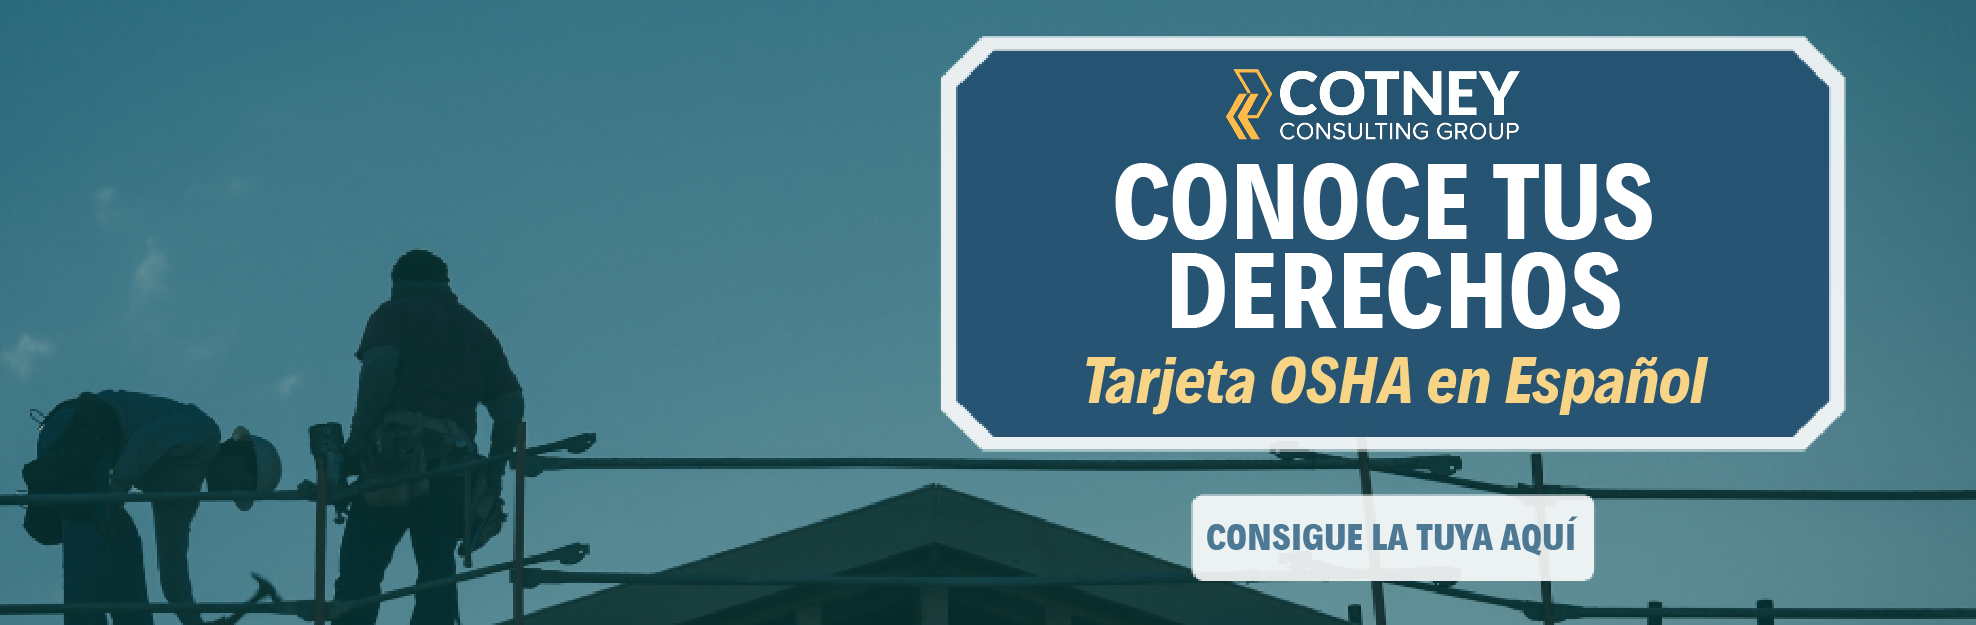 Cotney Construction Law - Billboard Ad - Spanish OSHA Card - En Espanol